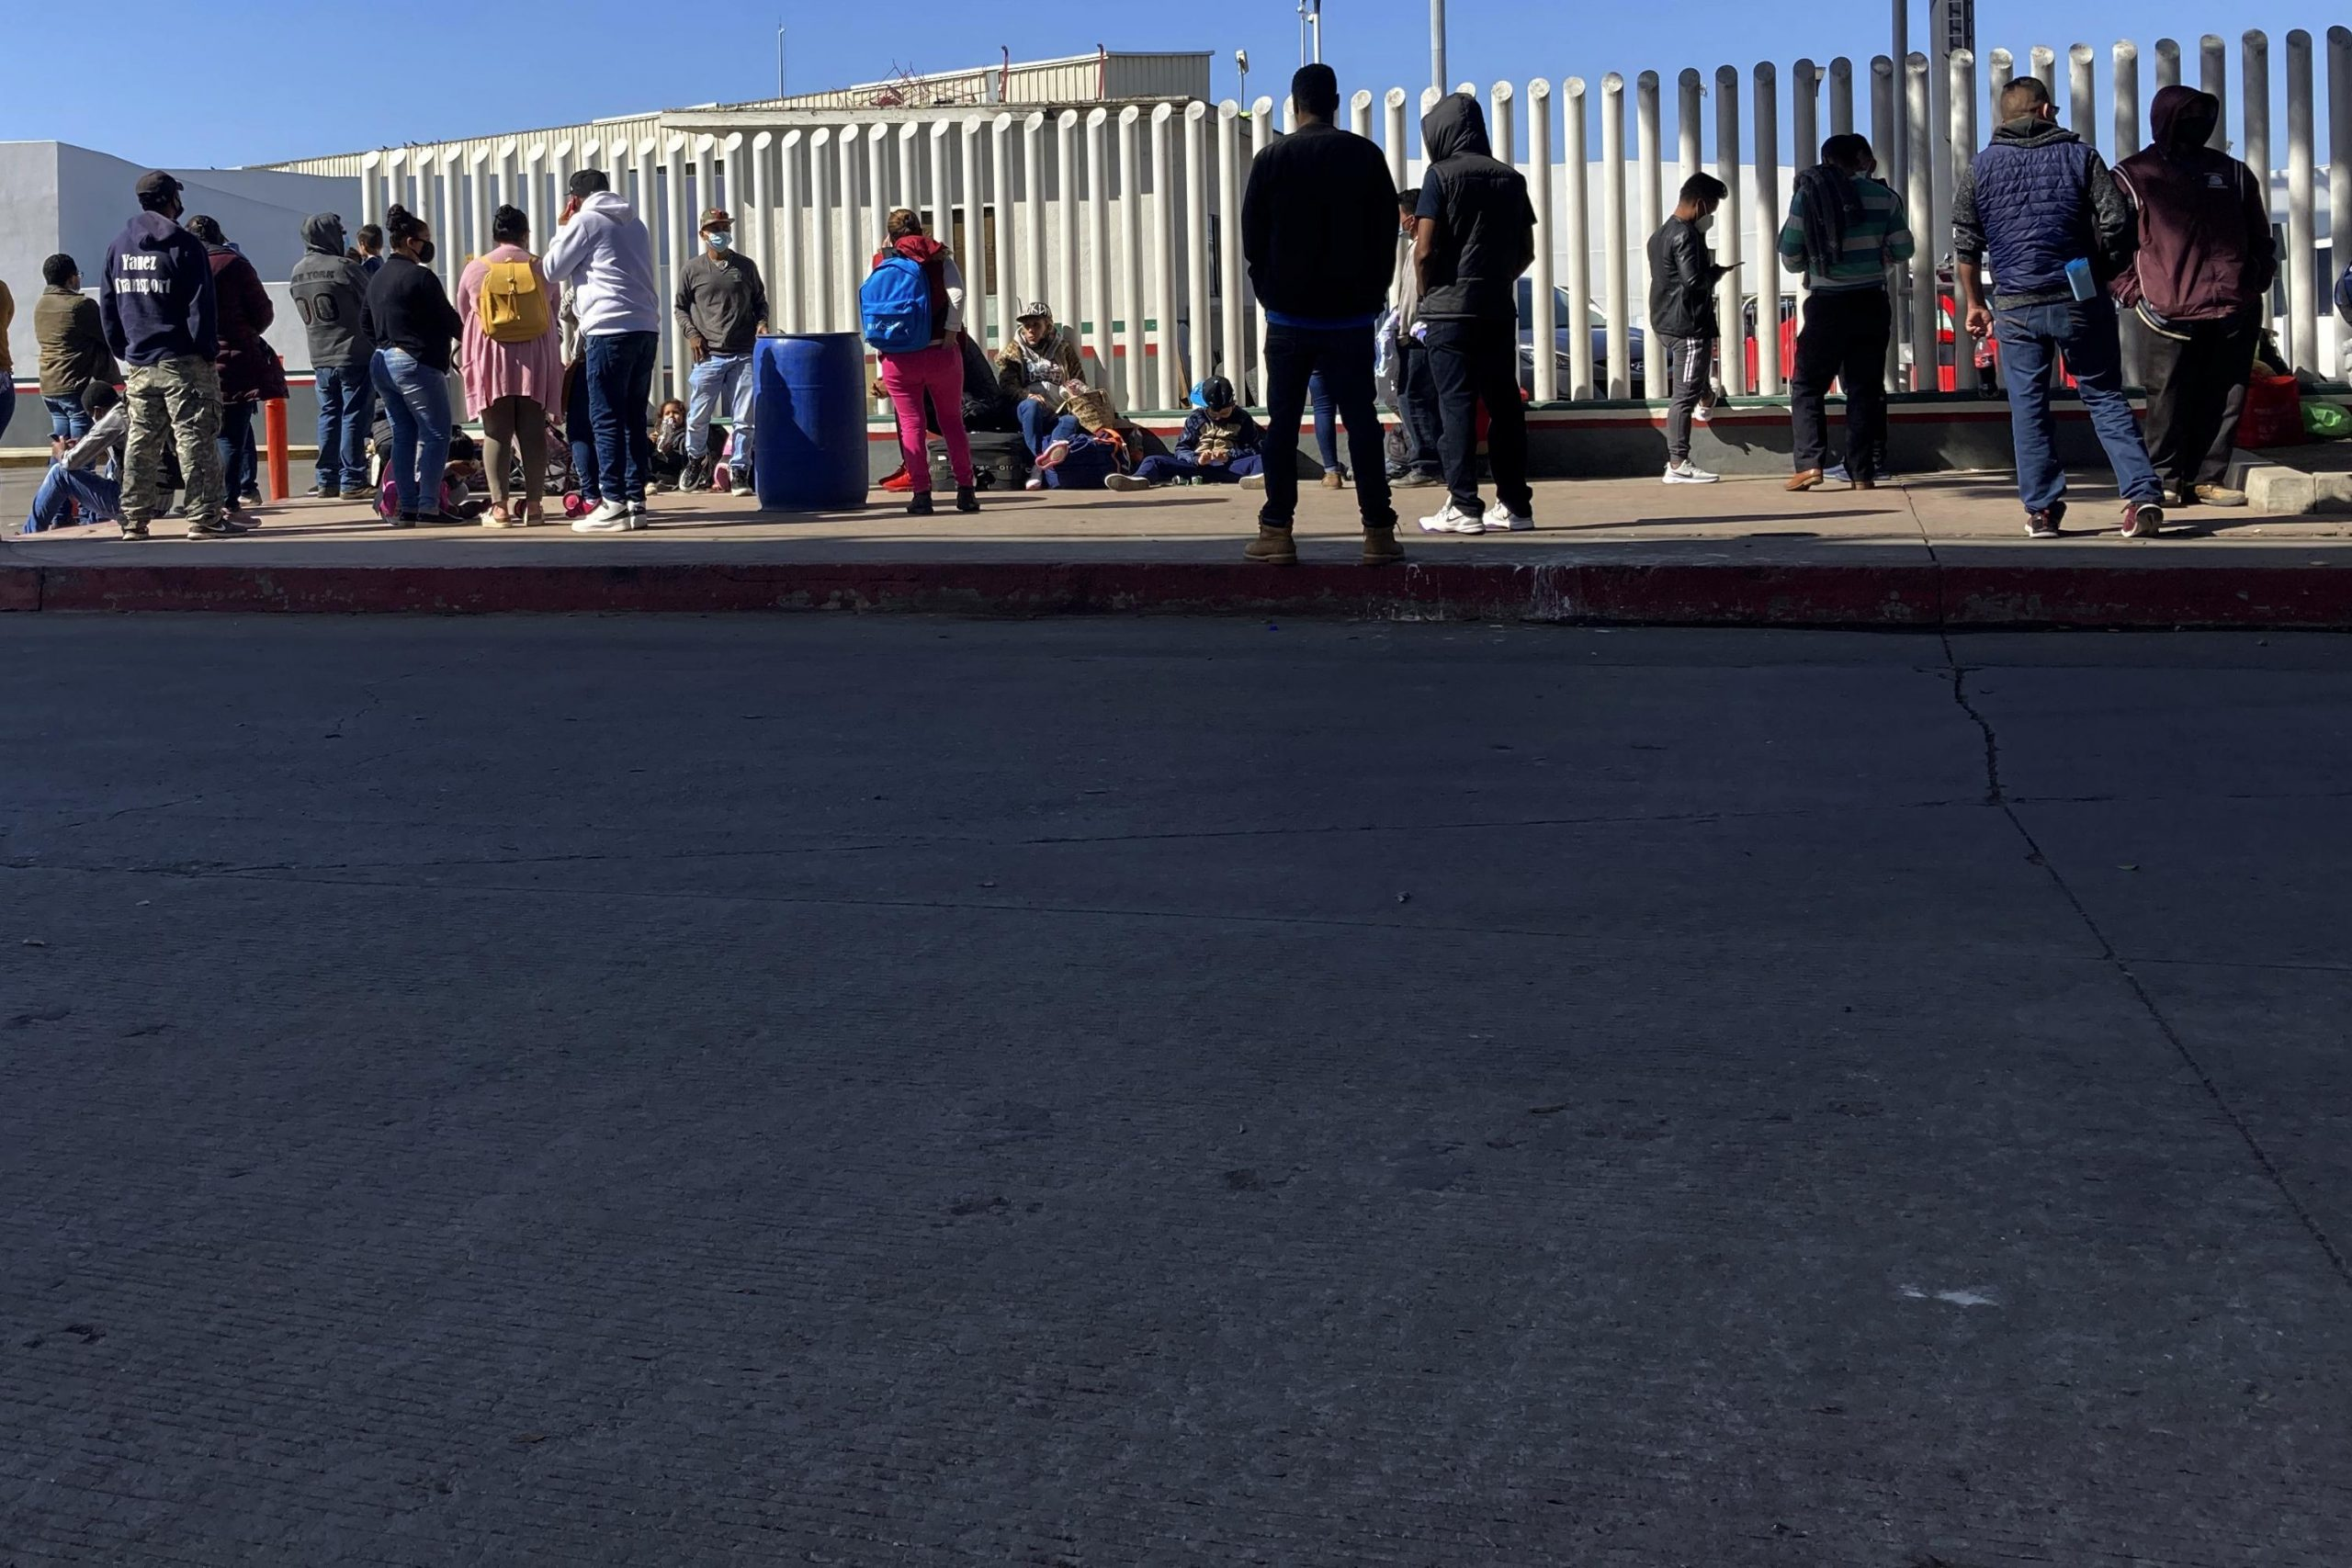 U.S. Supreme Court orders 'Remain in Mexico' policy reinstated 6